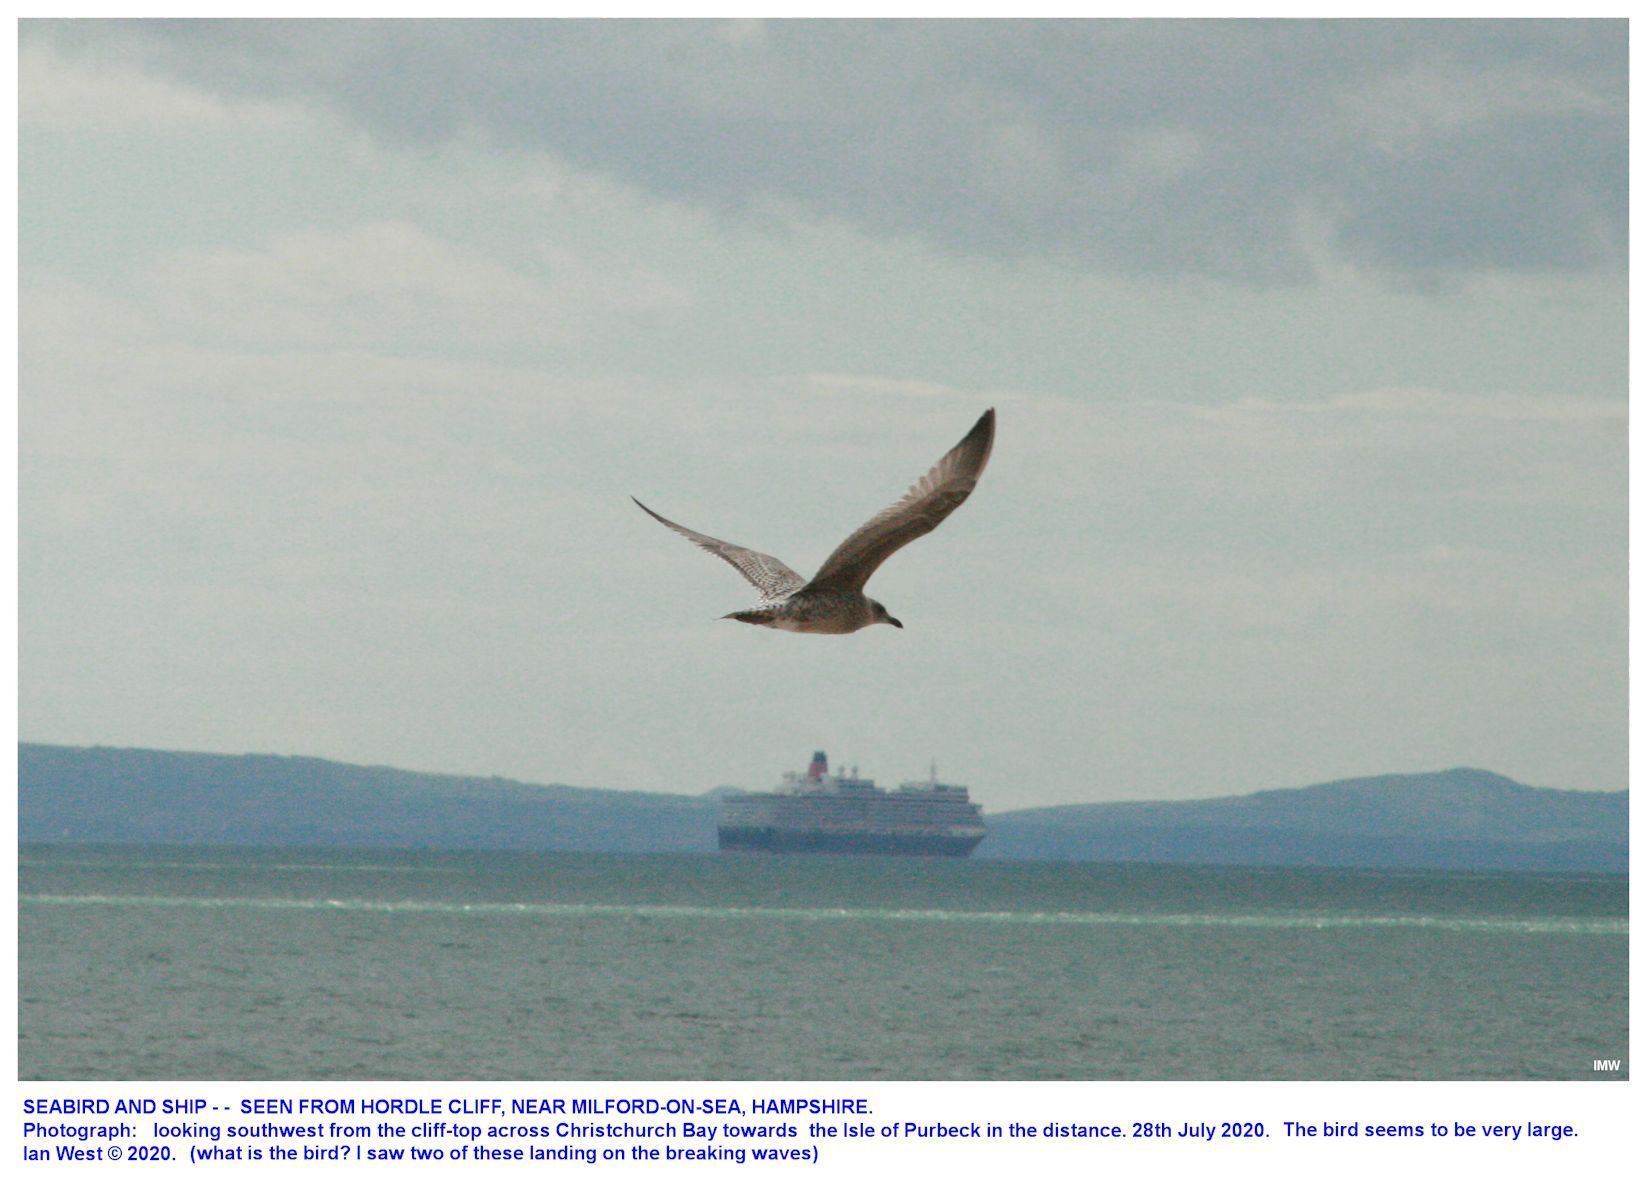 General environment at Hordle Cliff, Hampshire - a large sea bird that has just been down on the waves, 28th July 2020